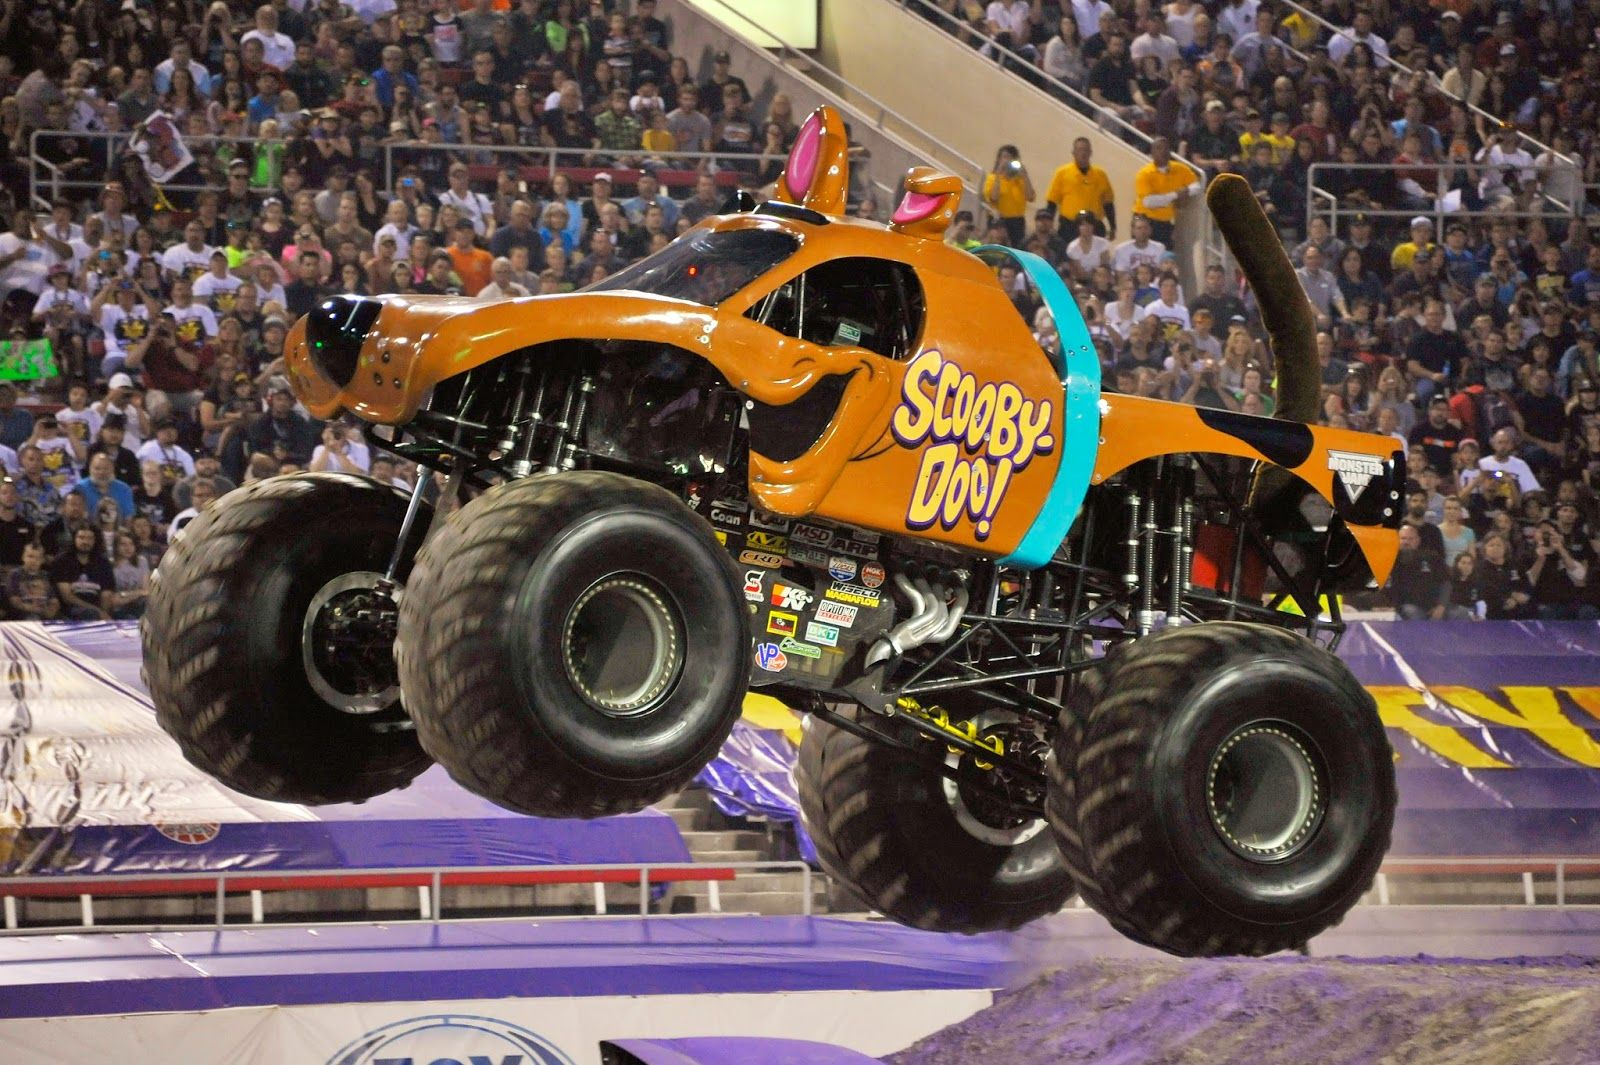 pin by michele yancy on monster jam pinterest monster trucks